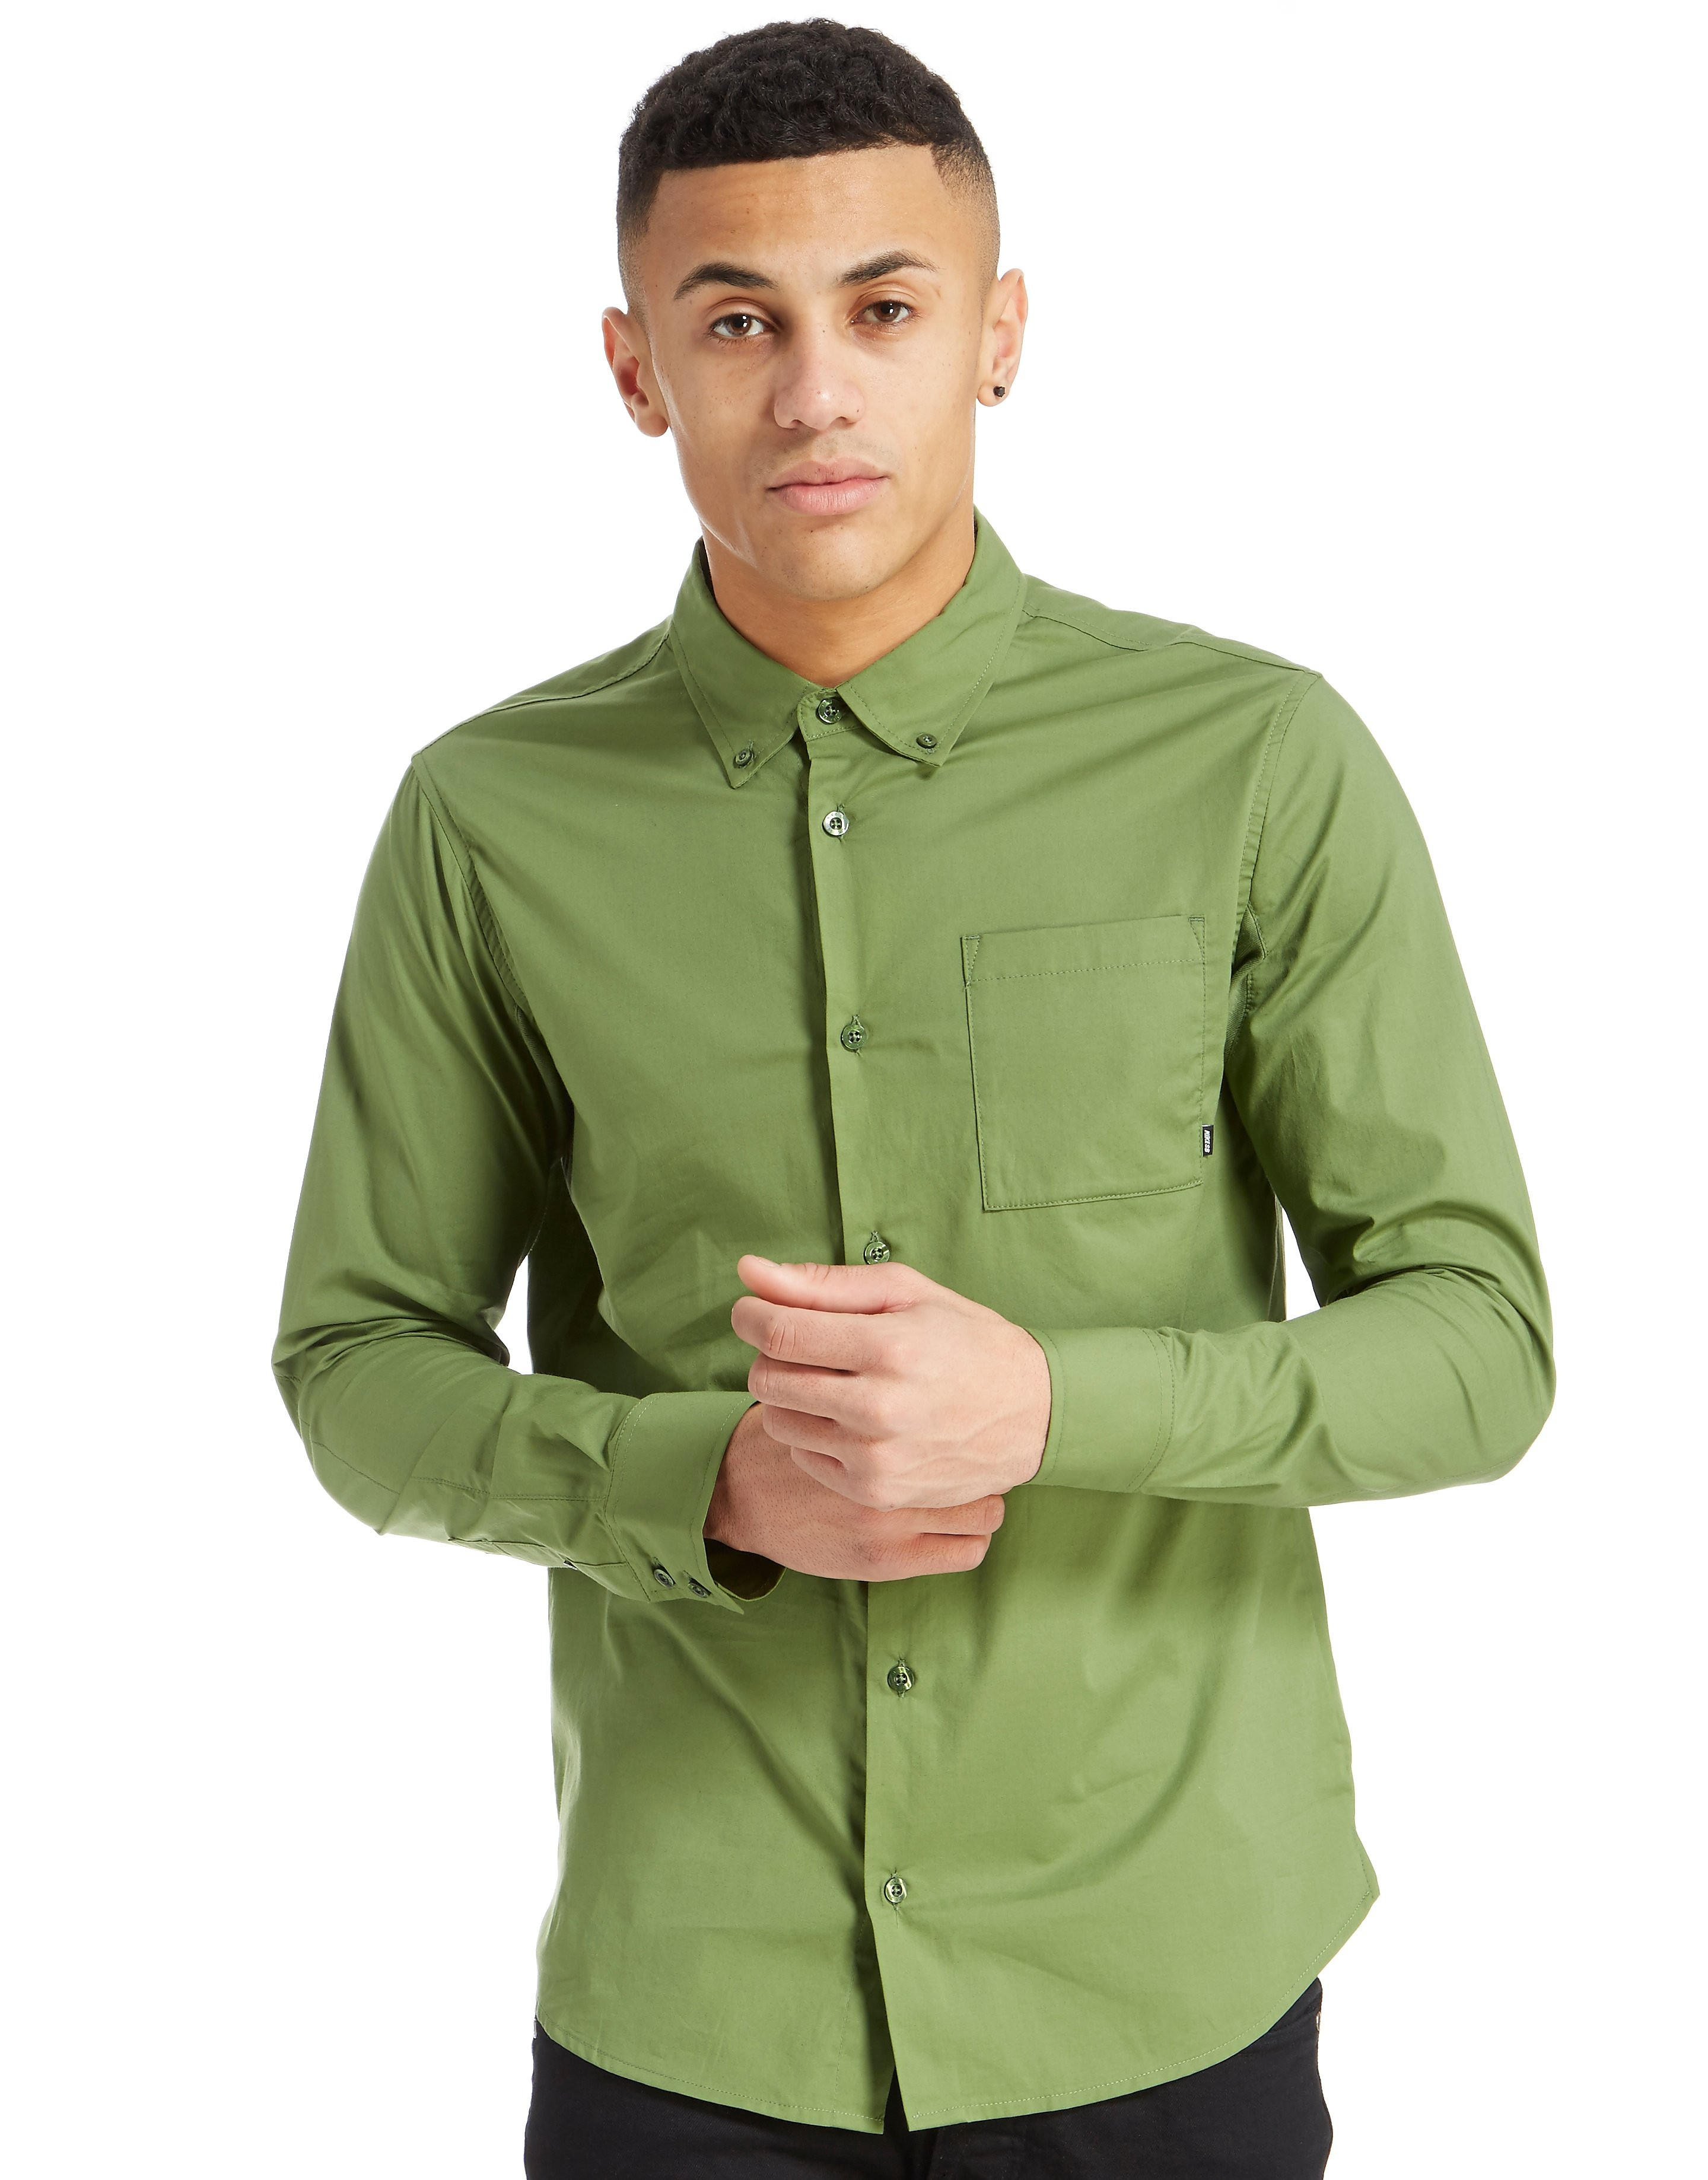 Nike SB Holgate Long-Sleeved Shirt